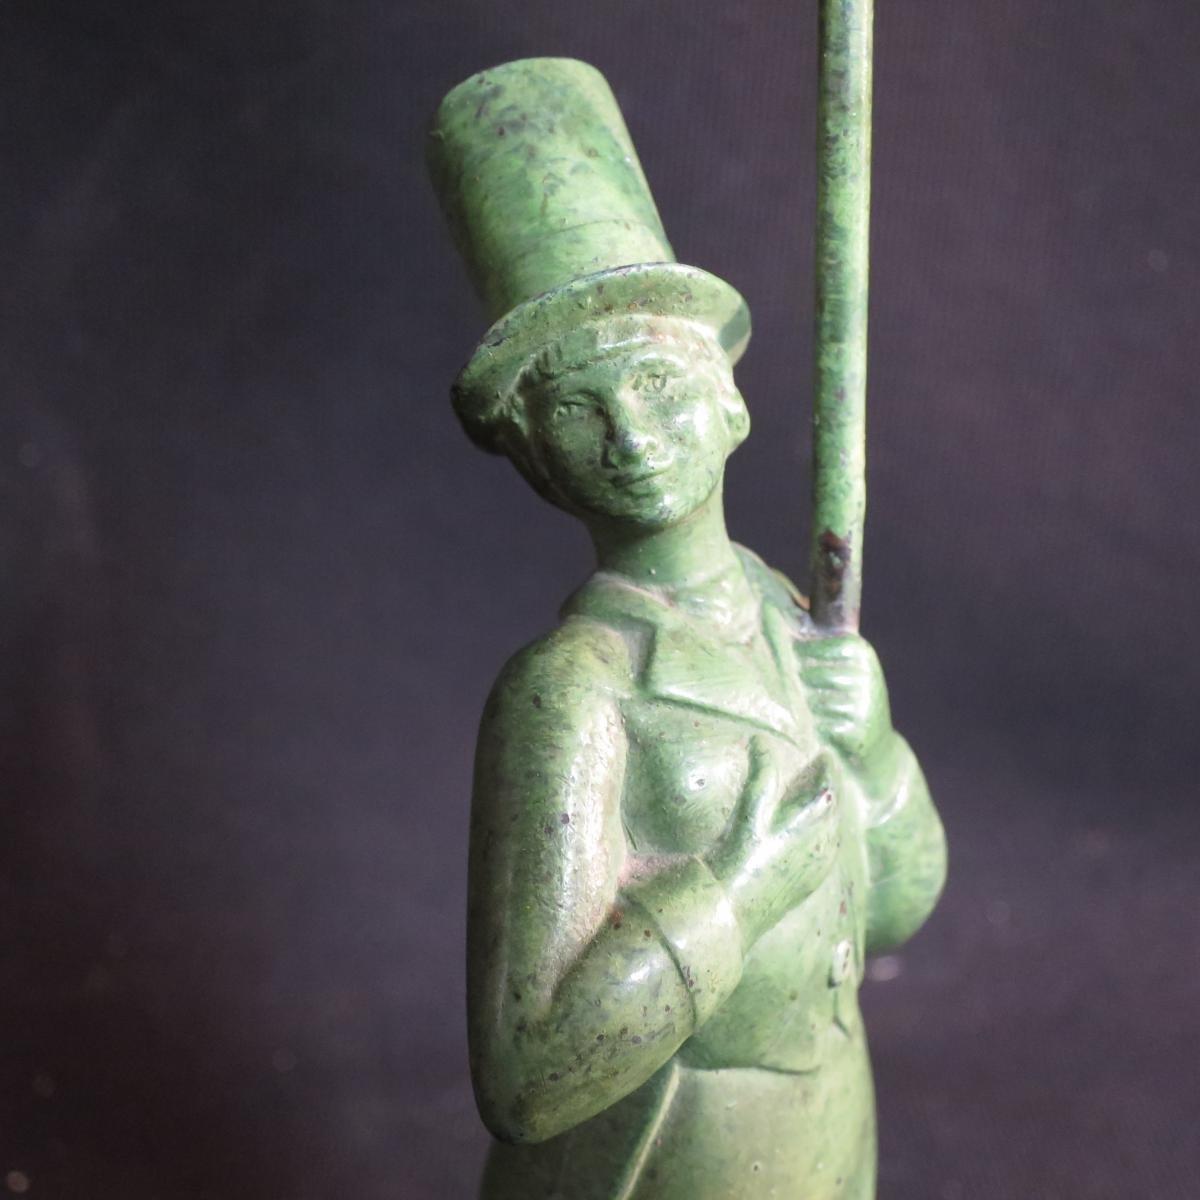 Lamp Sculpture Art Deco Signed Jc Darvel Cirque Comedien In Top Hat Shaped-photo-4